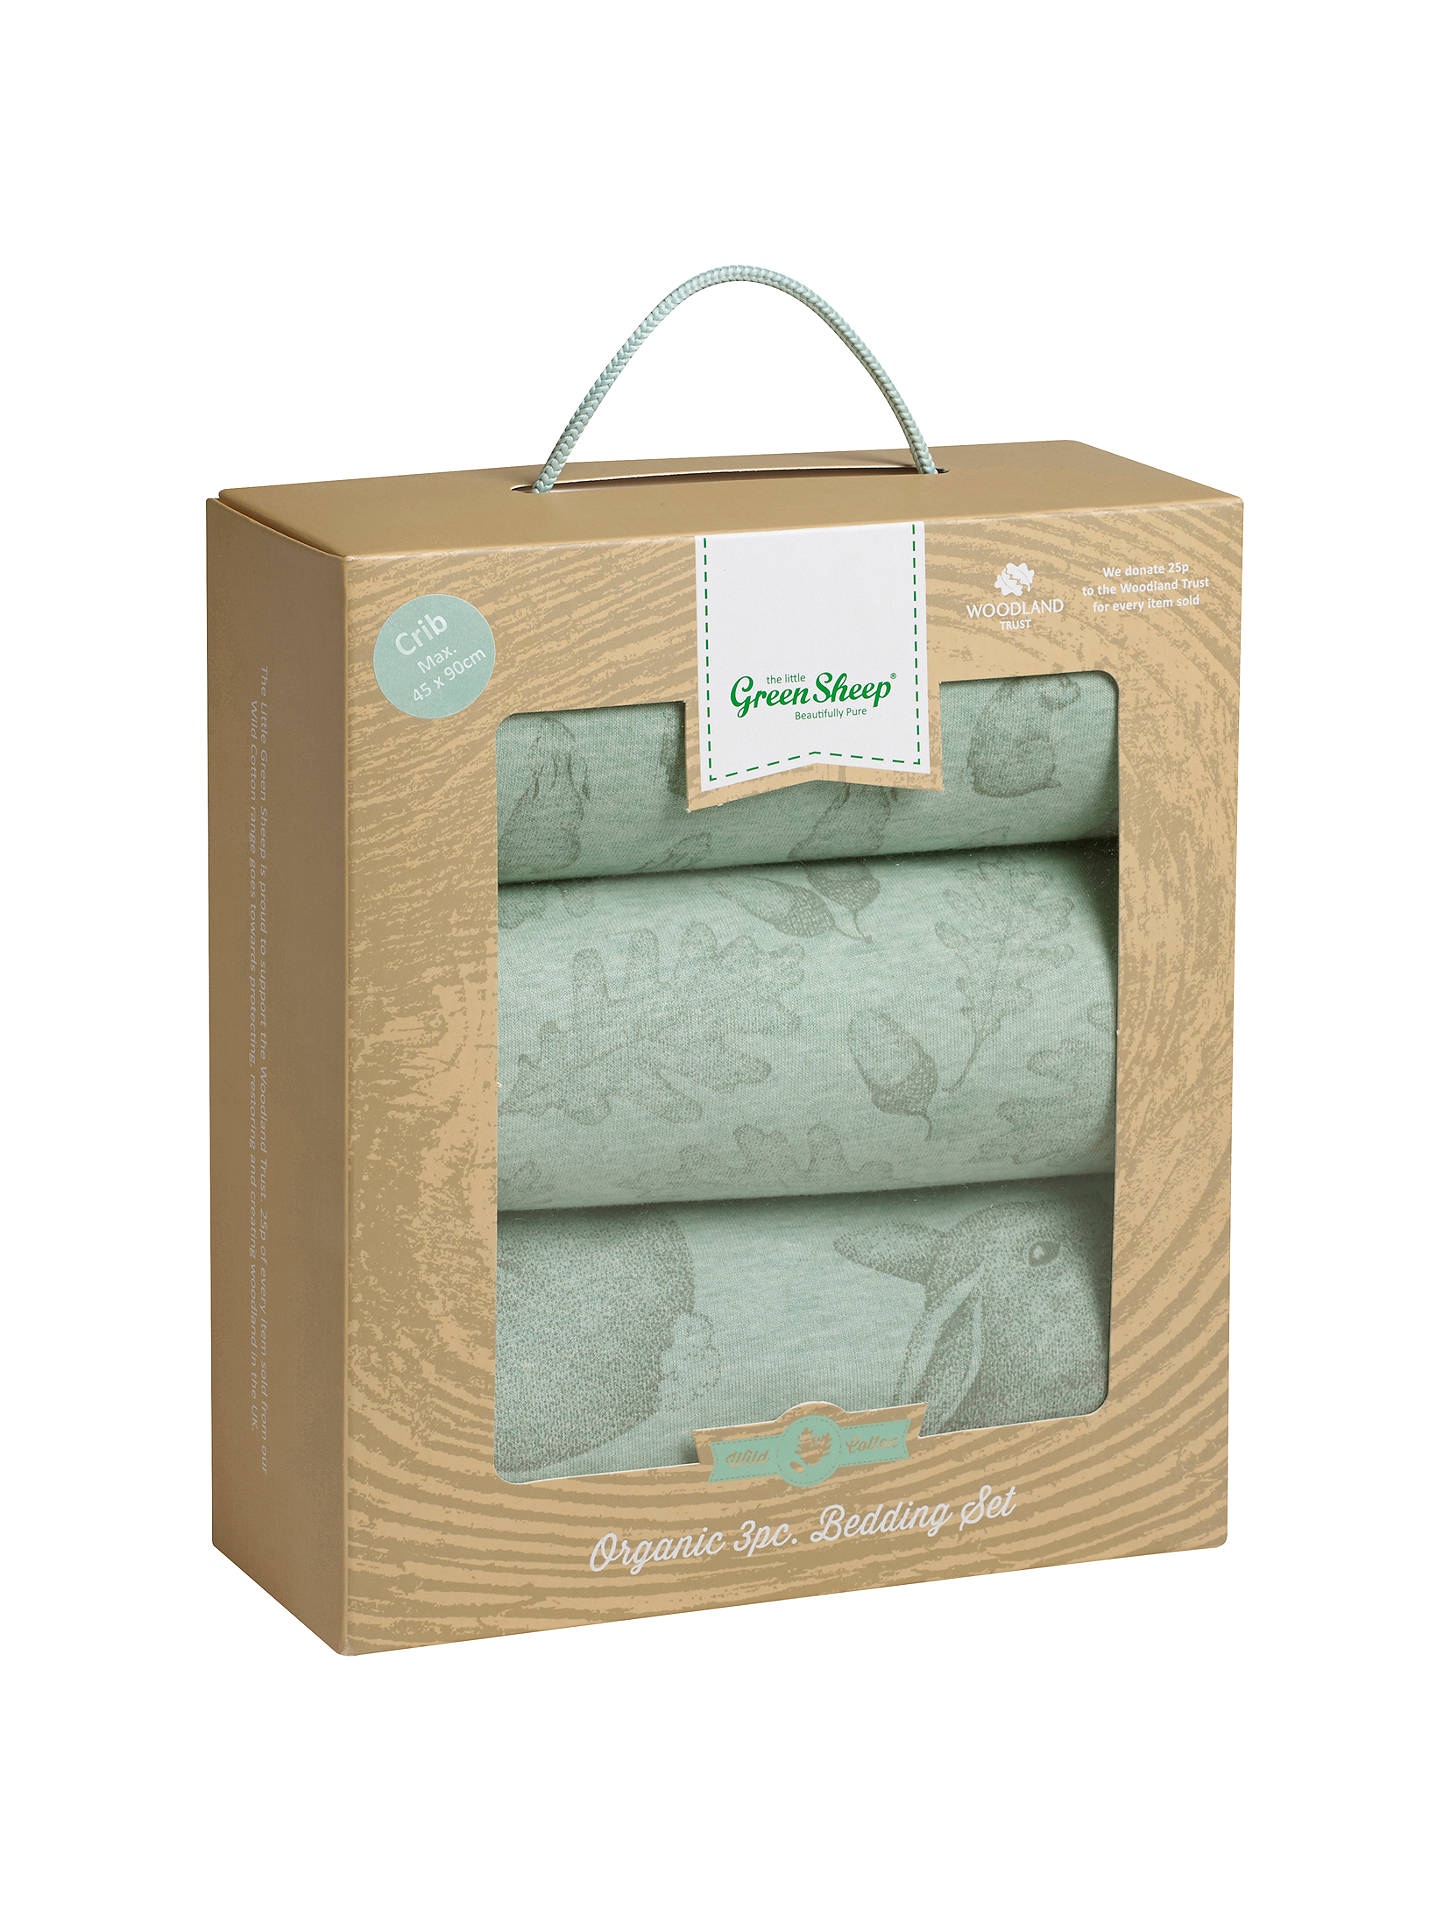 BuyThe Little Green Sheep Wild Cotton Baby Rabbit Crib Bedding Set, Pack of 3 Online at johnlewis.com